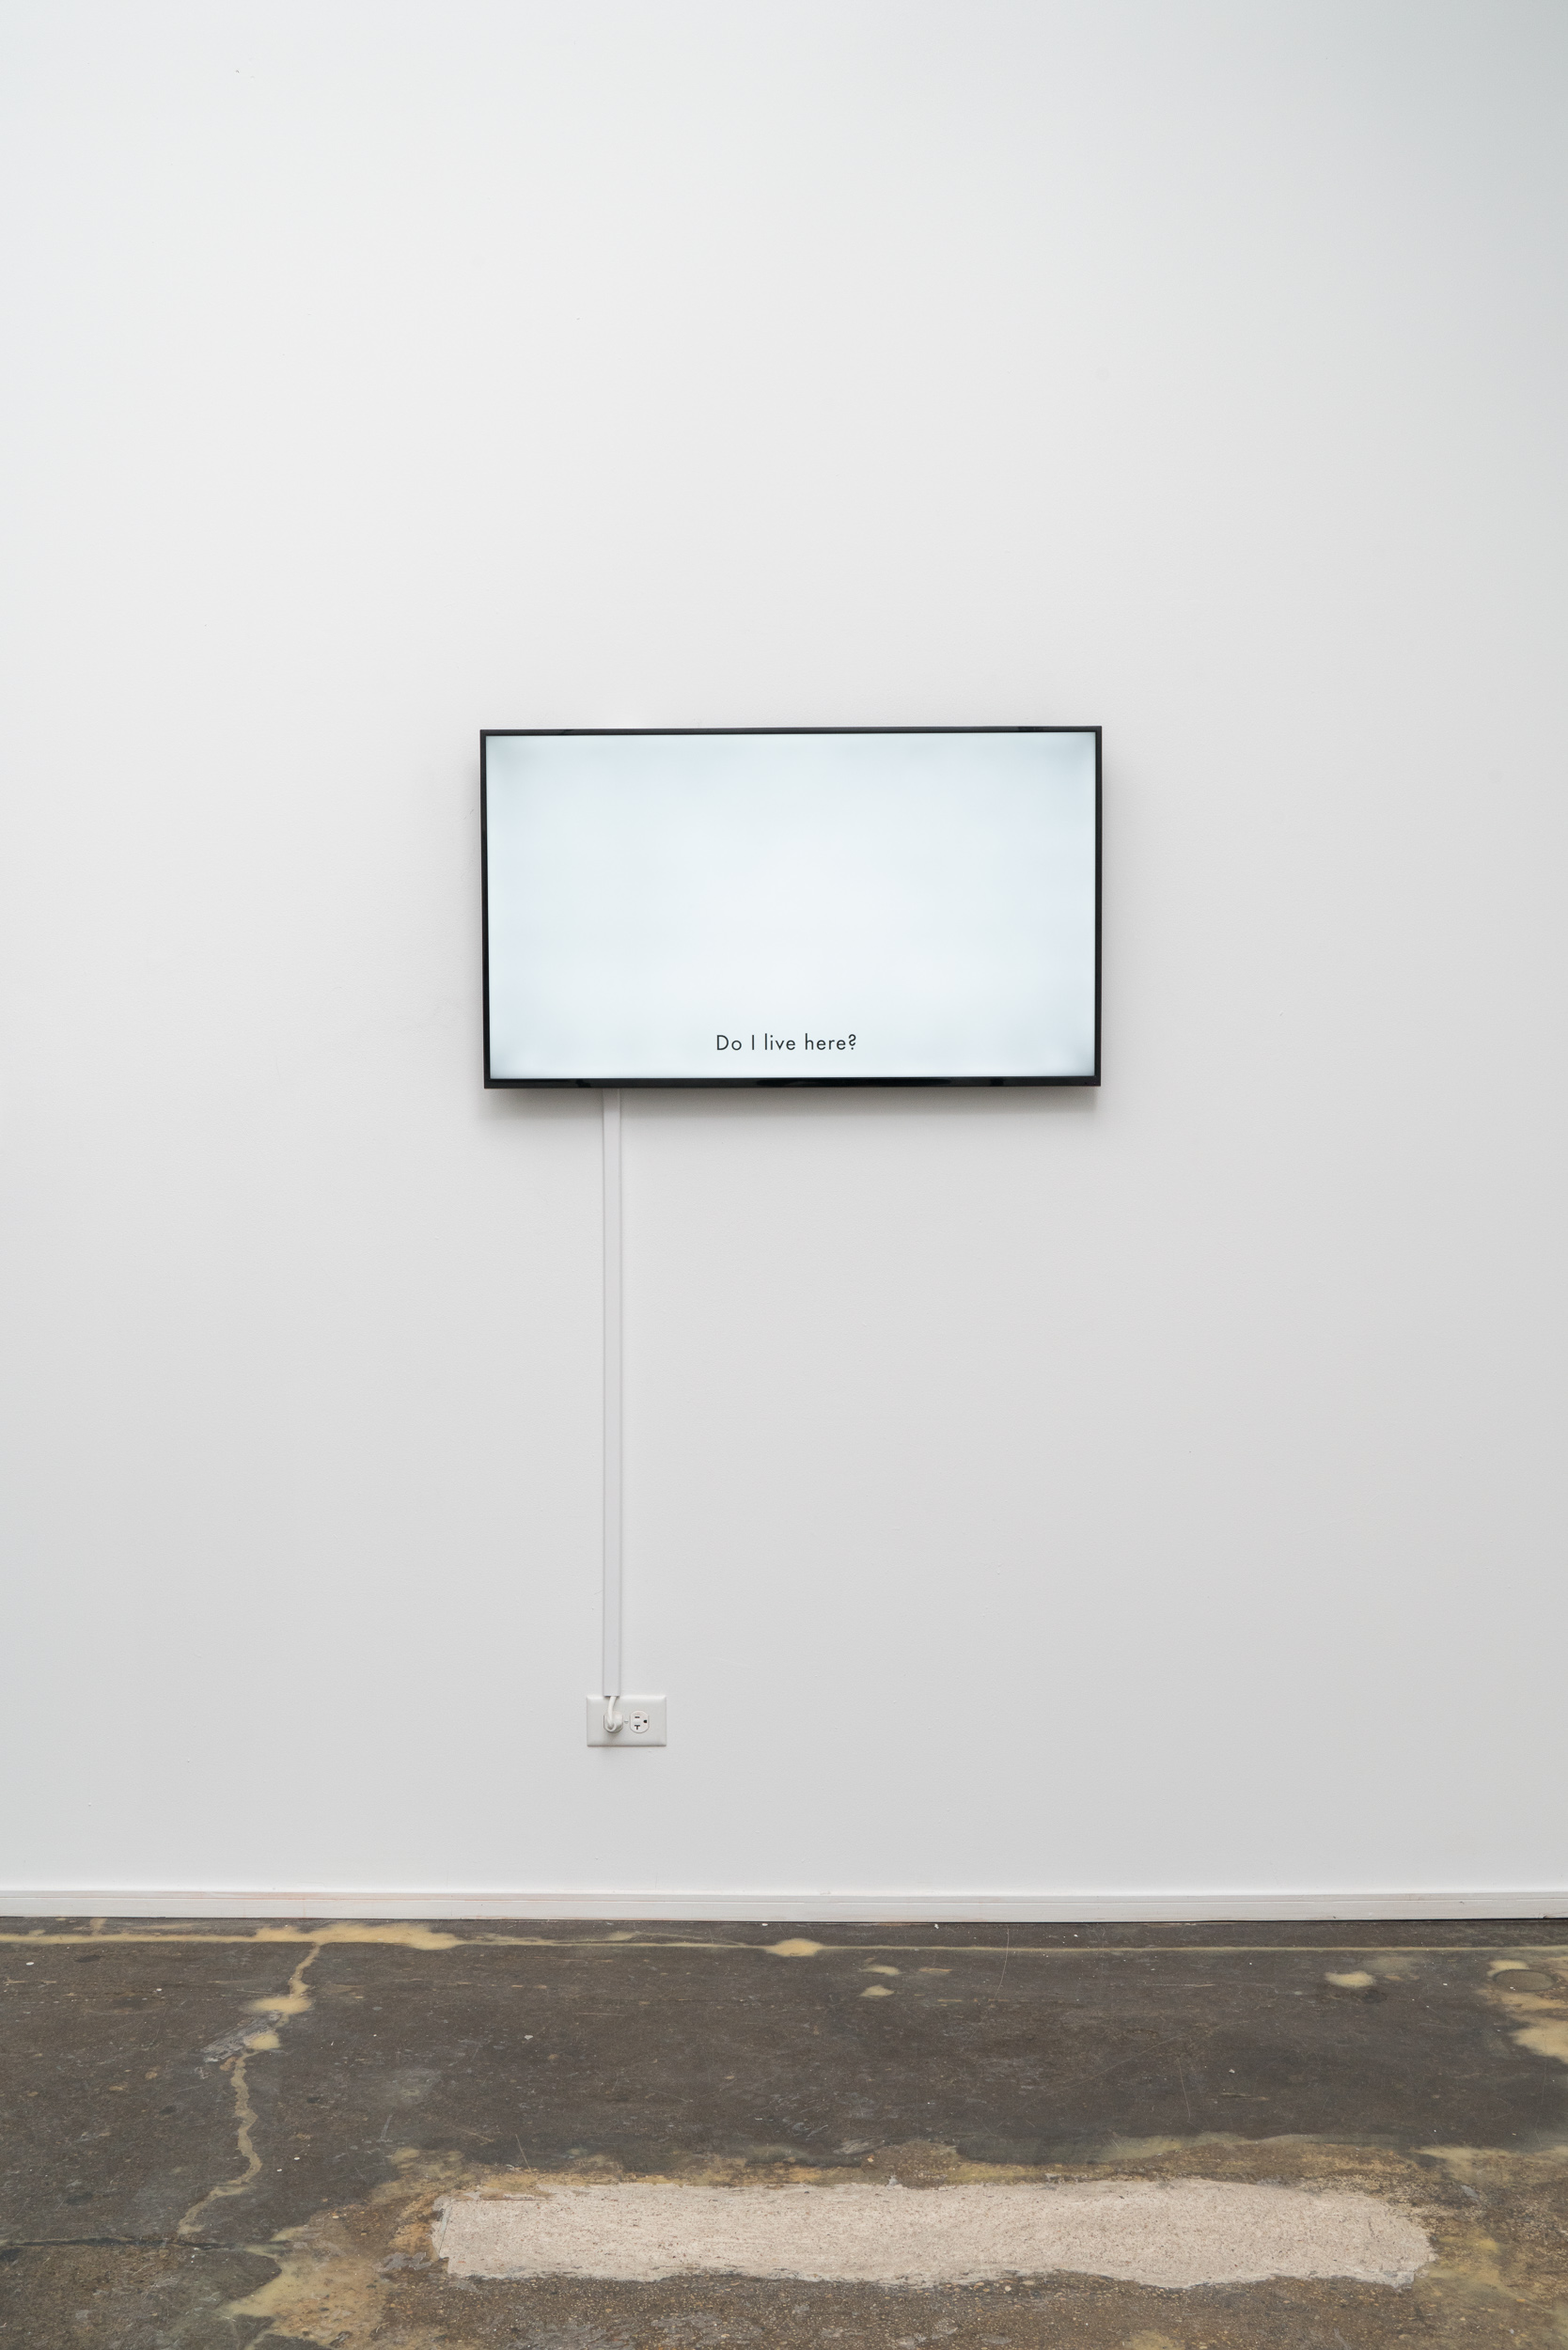 """Jazmine Harris, Re-membering (lobby conversations), 2020, HD single-channel video. Screen mounted on exhibition wall is white, with the text, """"Do I Live Here?"""" Photo courtesy of the artist and curator."""